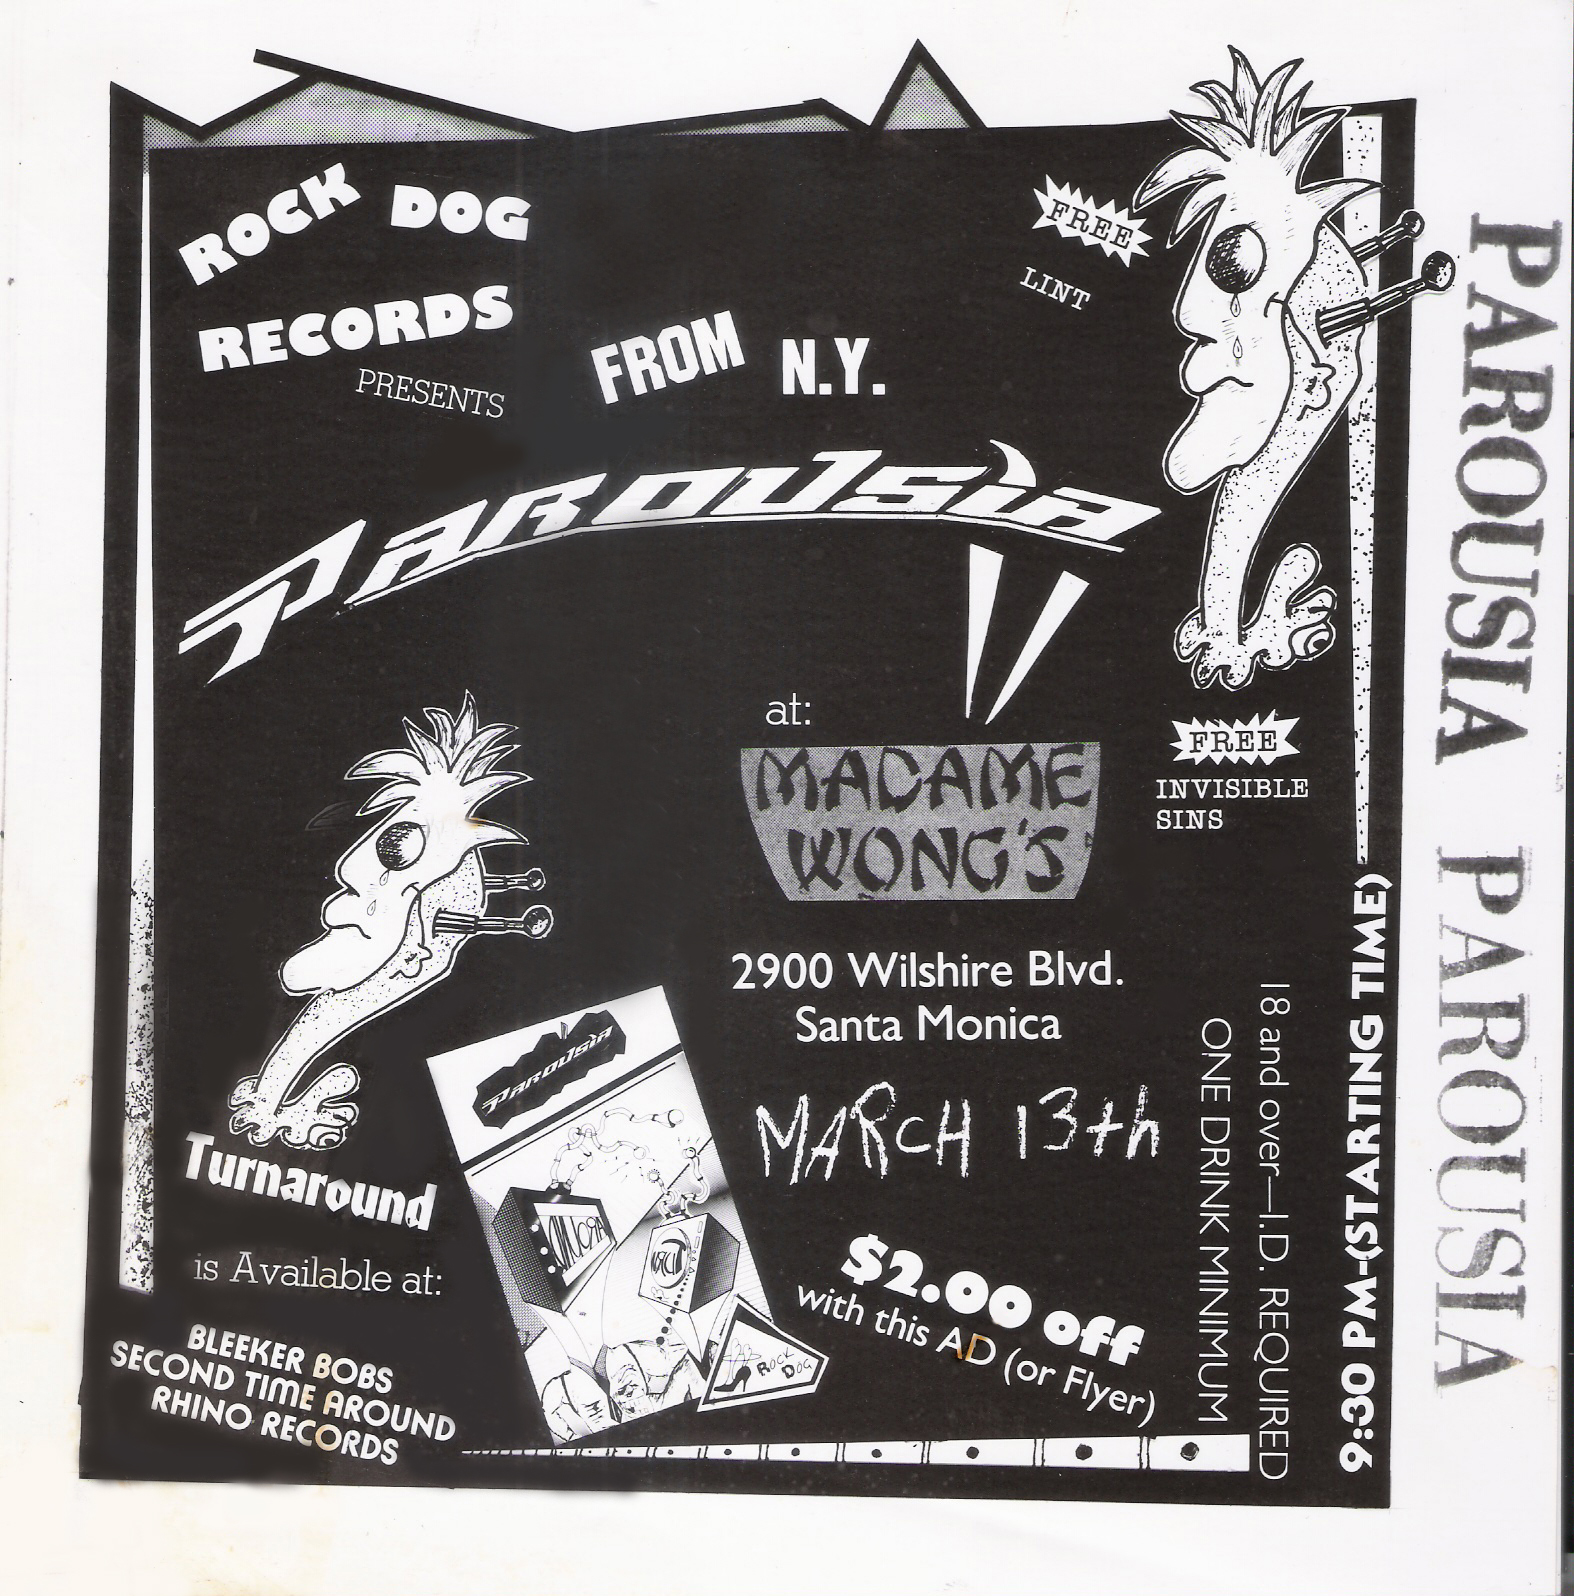 Parousia flyer for Madame Wong's 03-13.-88